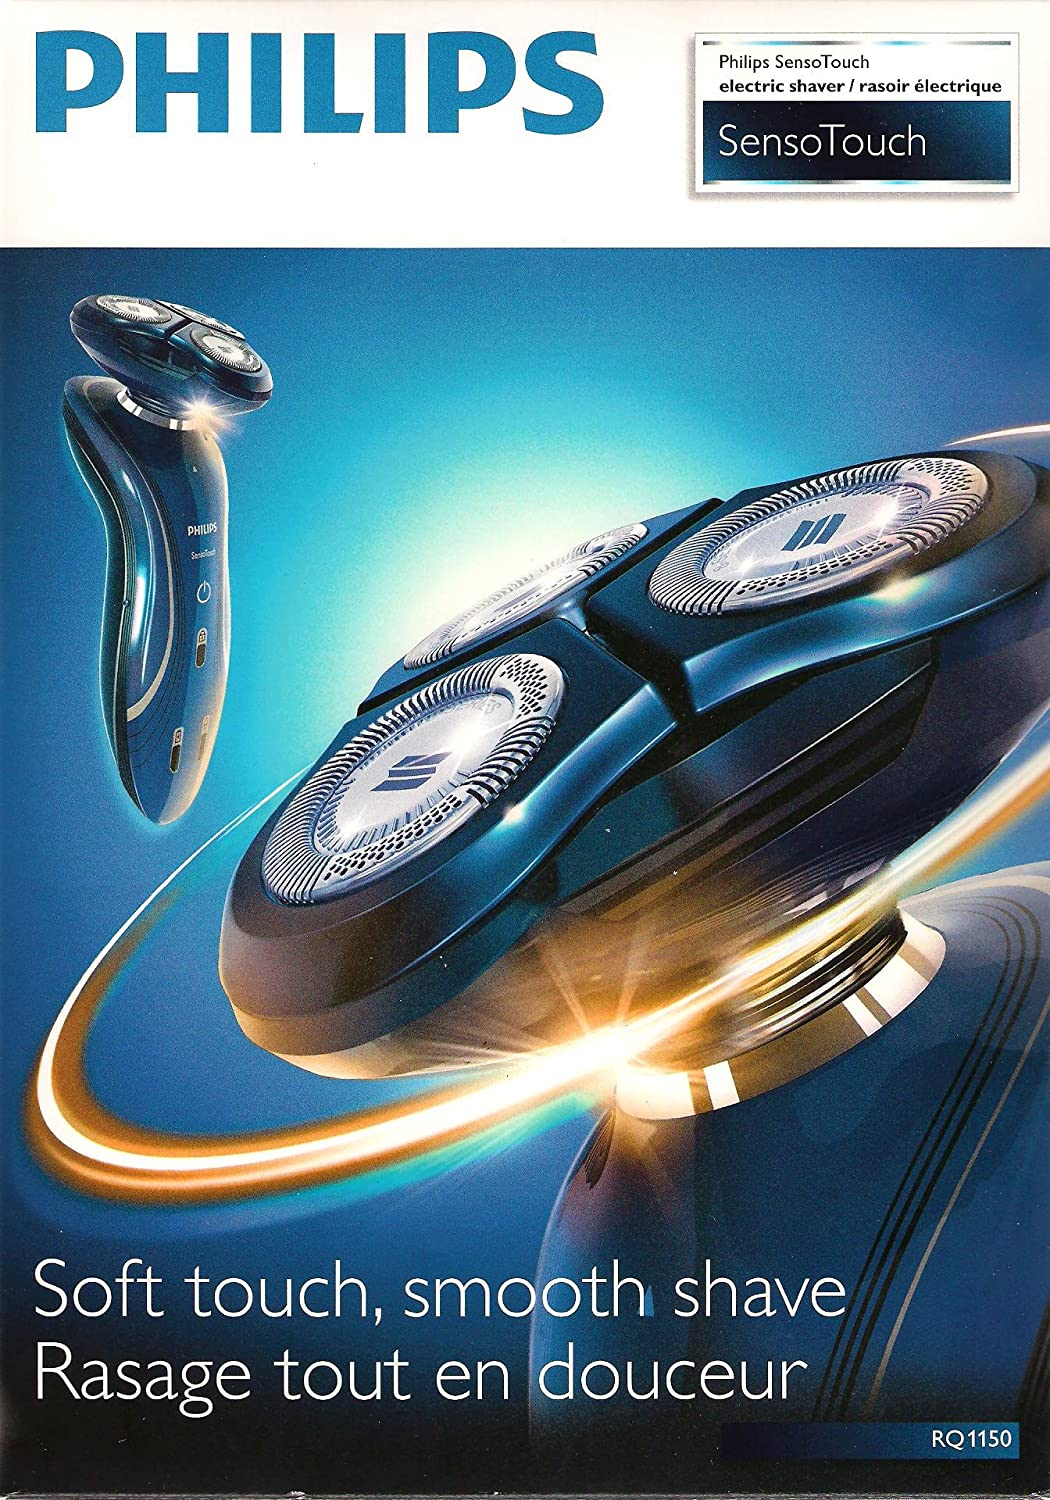 Philips 110 220v Sensotouch Electric Shaver Beauty Free Ongkir Dry Iron Hd 1173 40